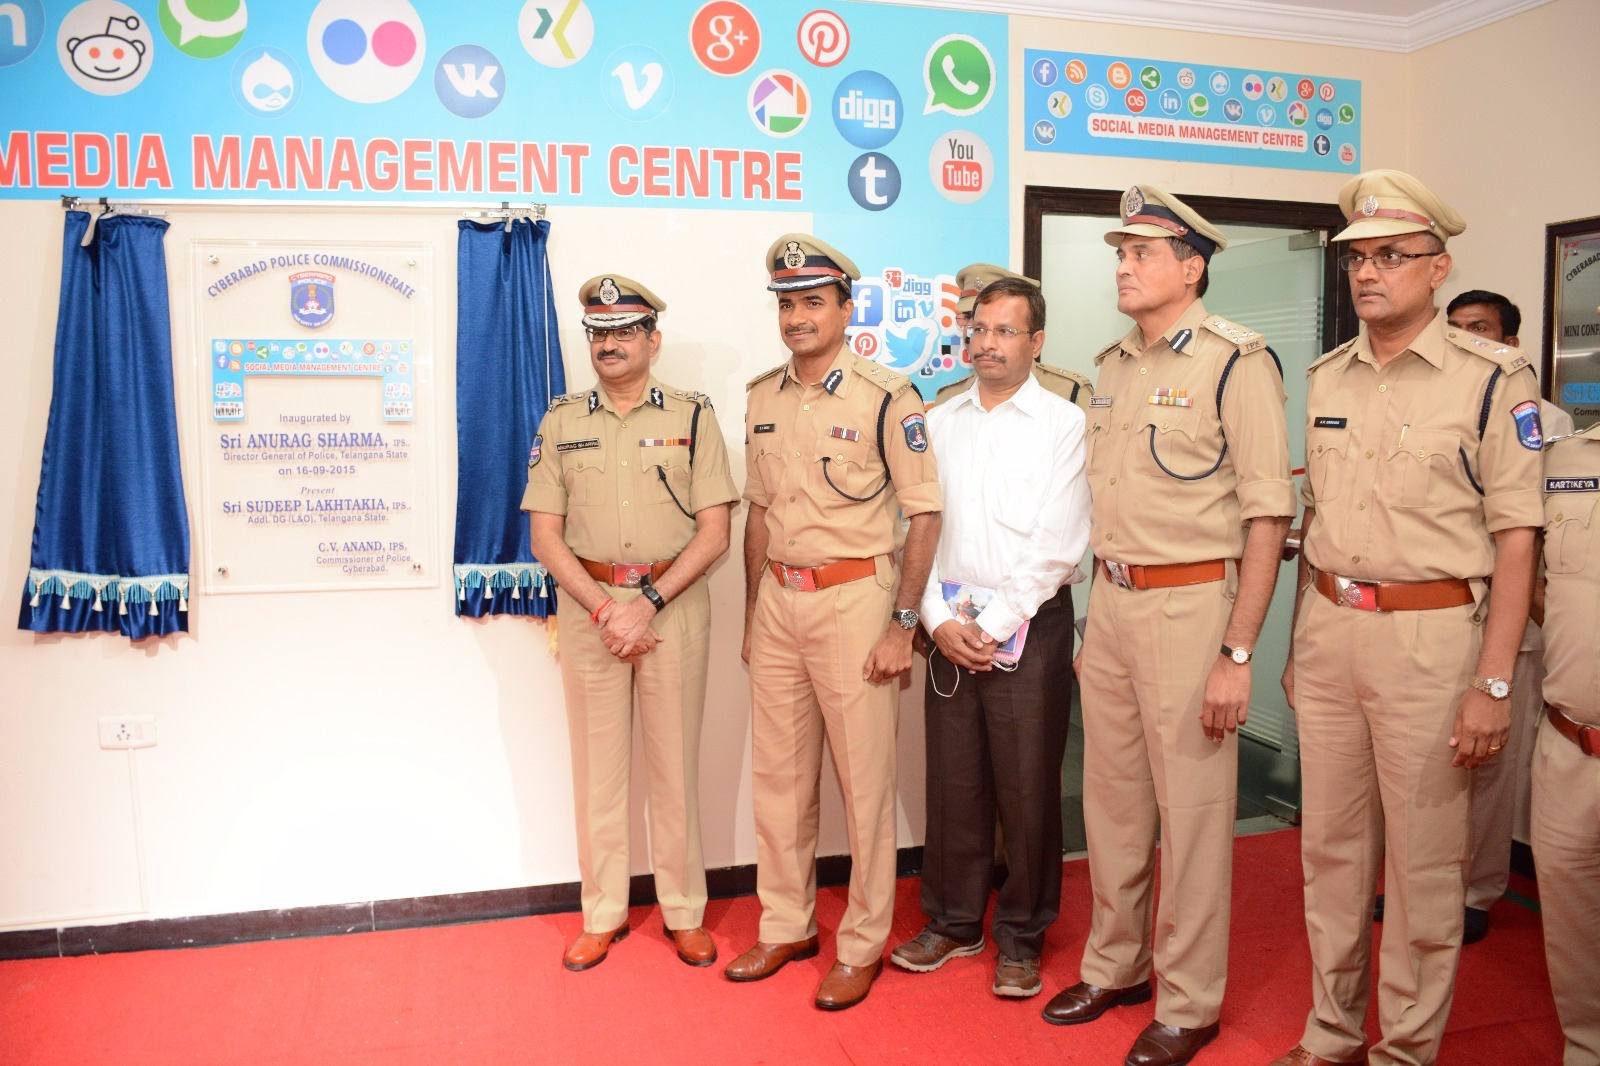 Social media management center inauguration